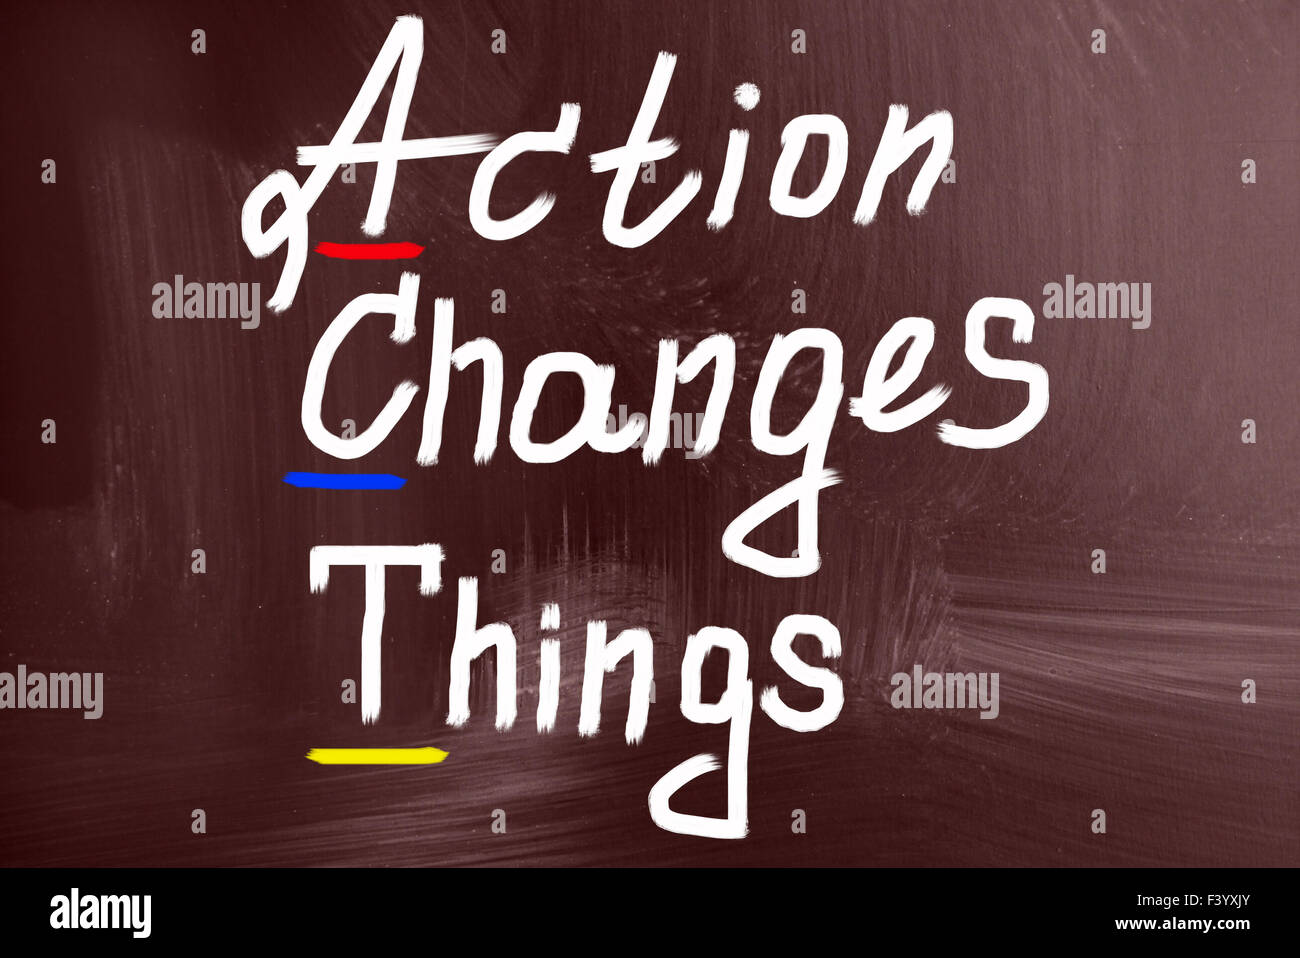 action change things concept Stock Photo